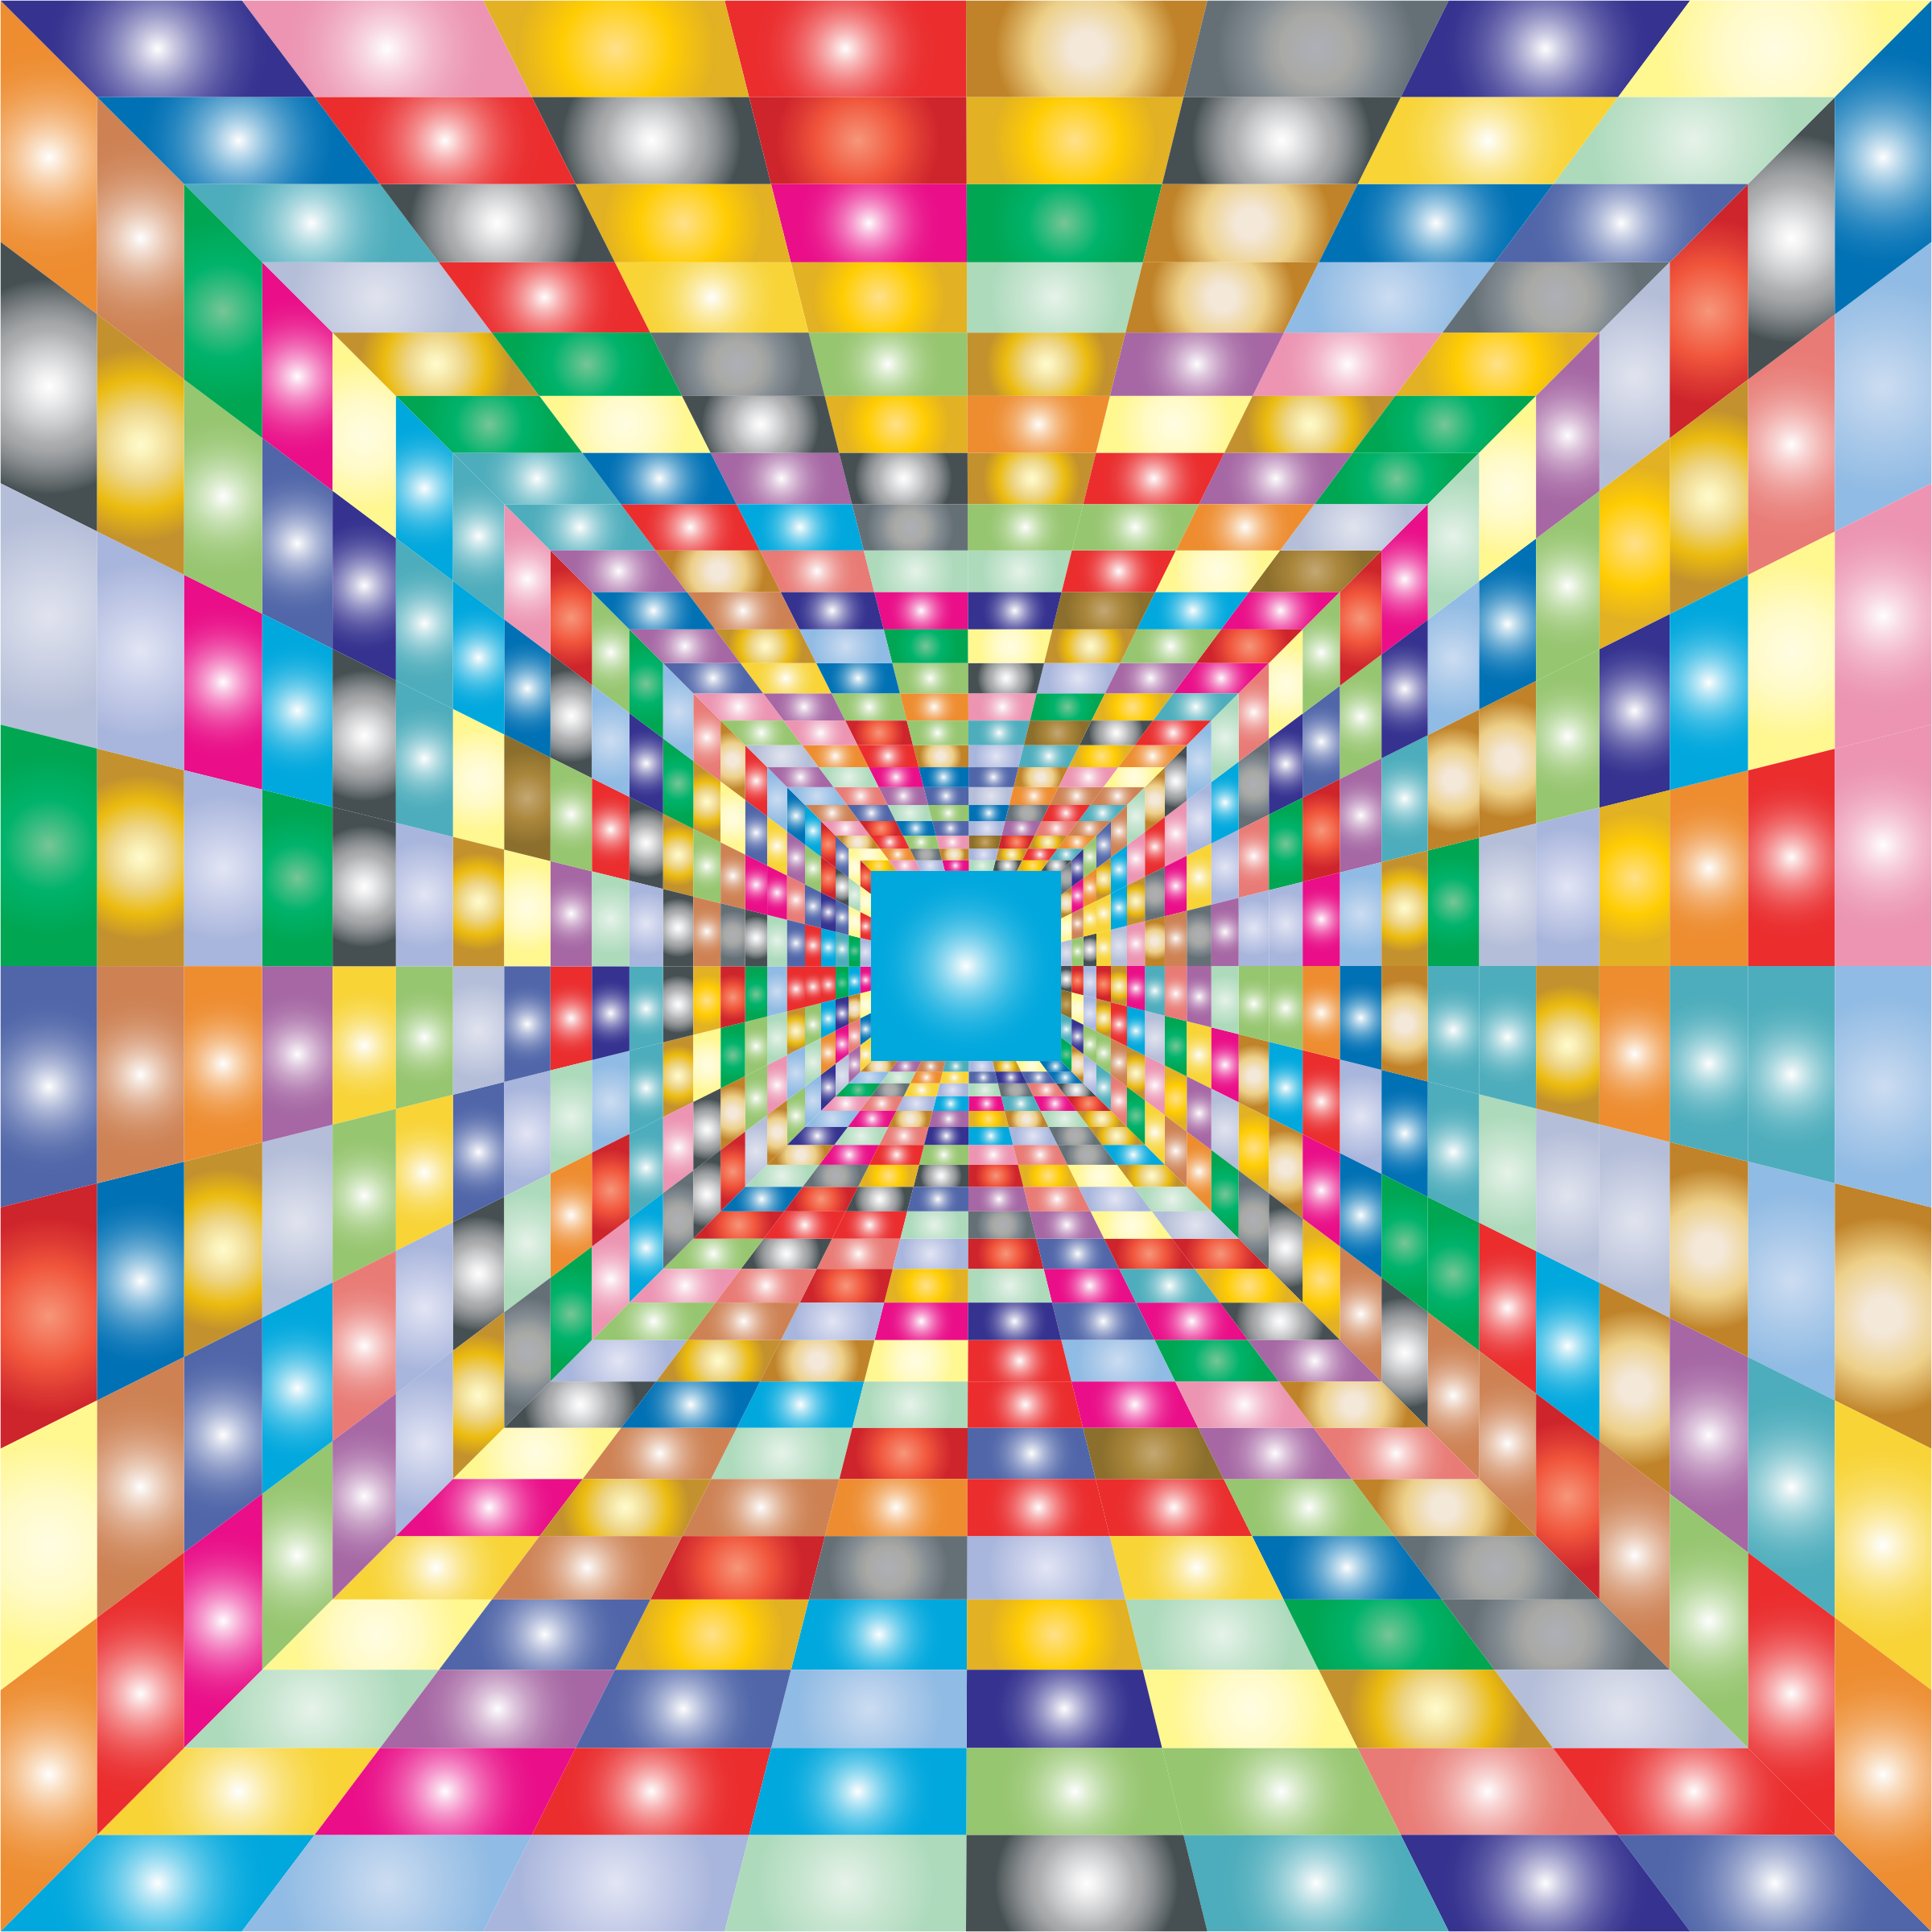 Colorful Perspective Grid by GDJ